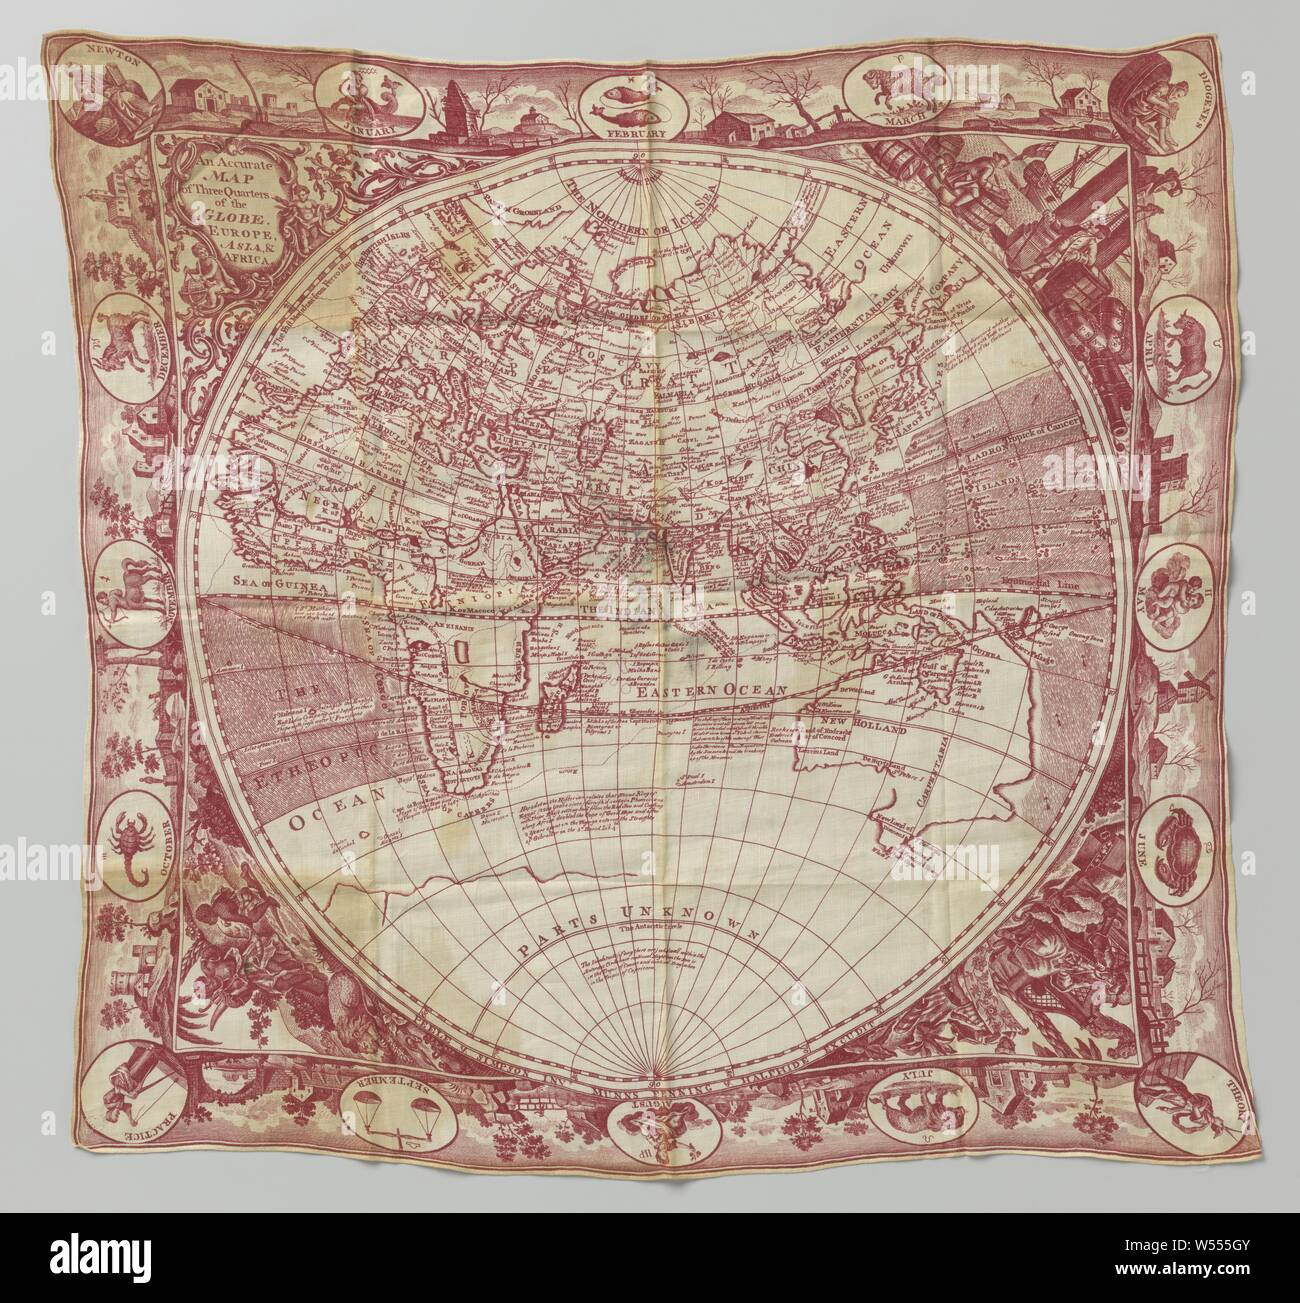 Map Of Zodiac Stock Photos & Map Of Zodiac Stock Images - Alamy Zodiac Map on story map, skagen map, cat map, moon map, earth map, everest map, scorpius map, complete astrology map, astrology chart map, ancient greek astronomy map, zombie map, fire map, monkey map, titanic map, capitals of the world map, astrological sign map, constellation map, world war z map, azimuth map, flags of the world map,